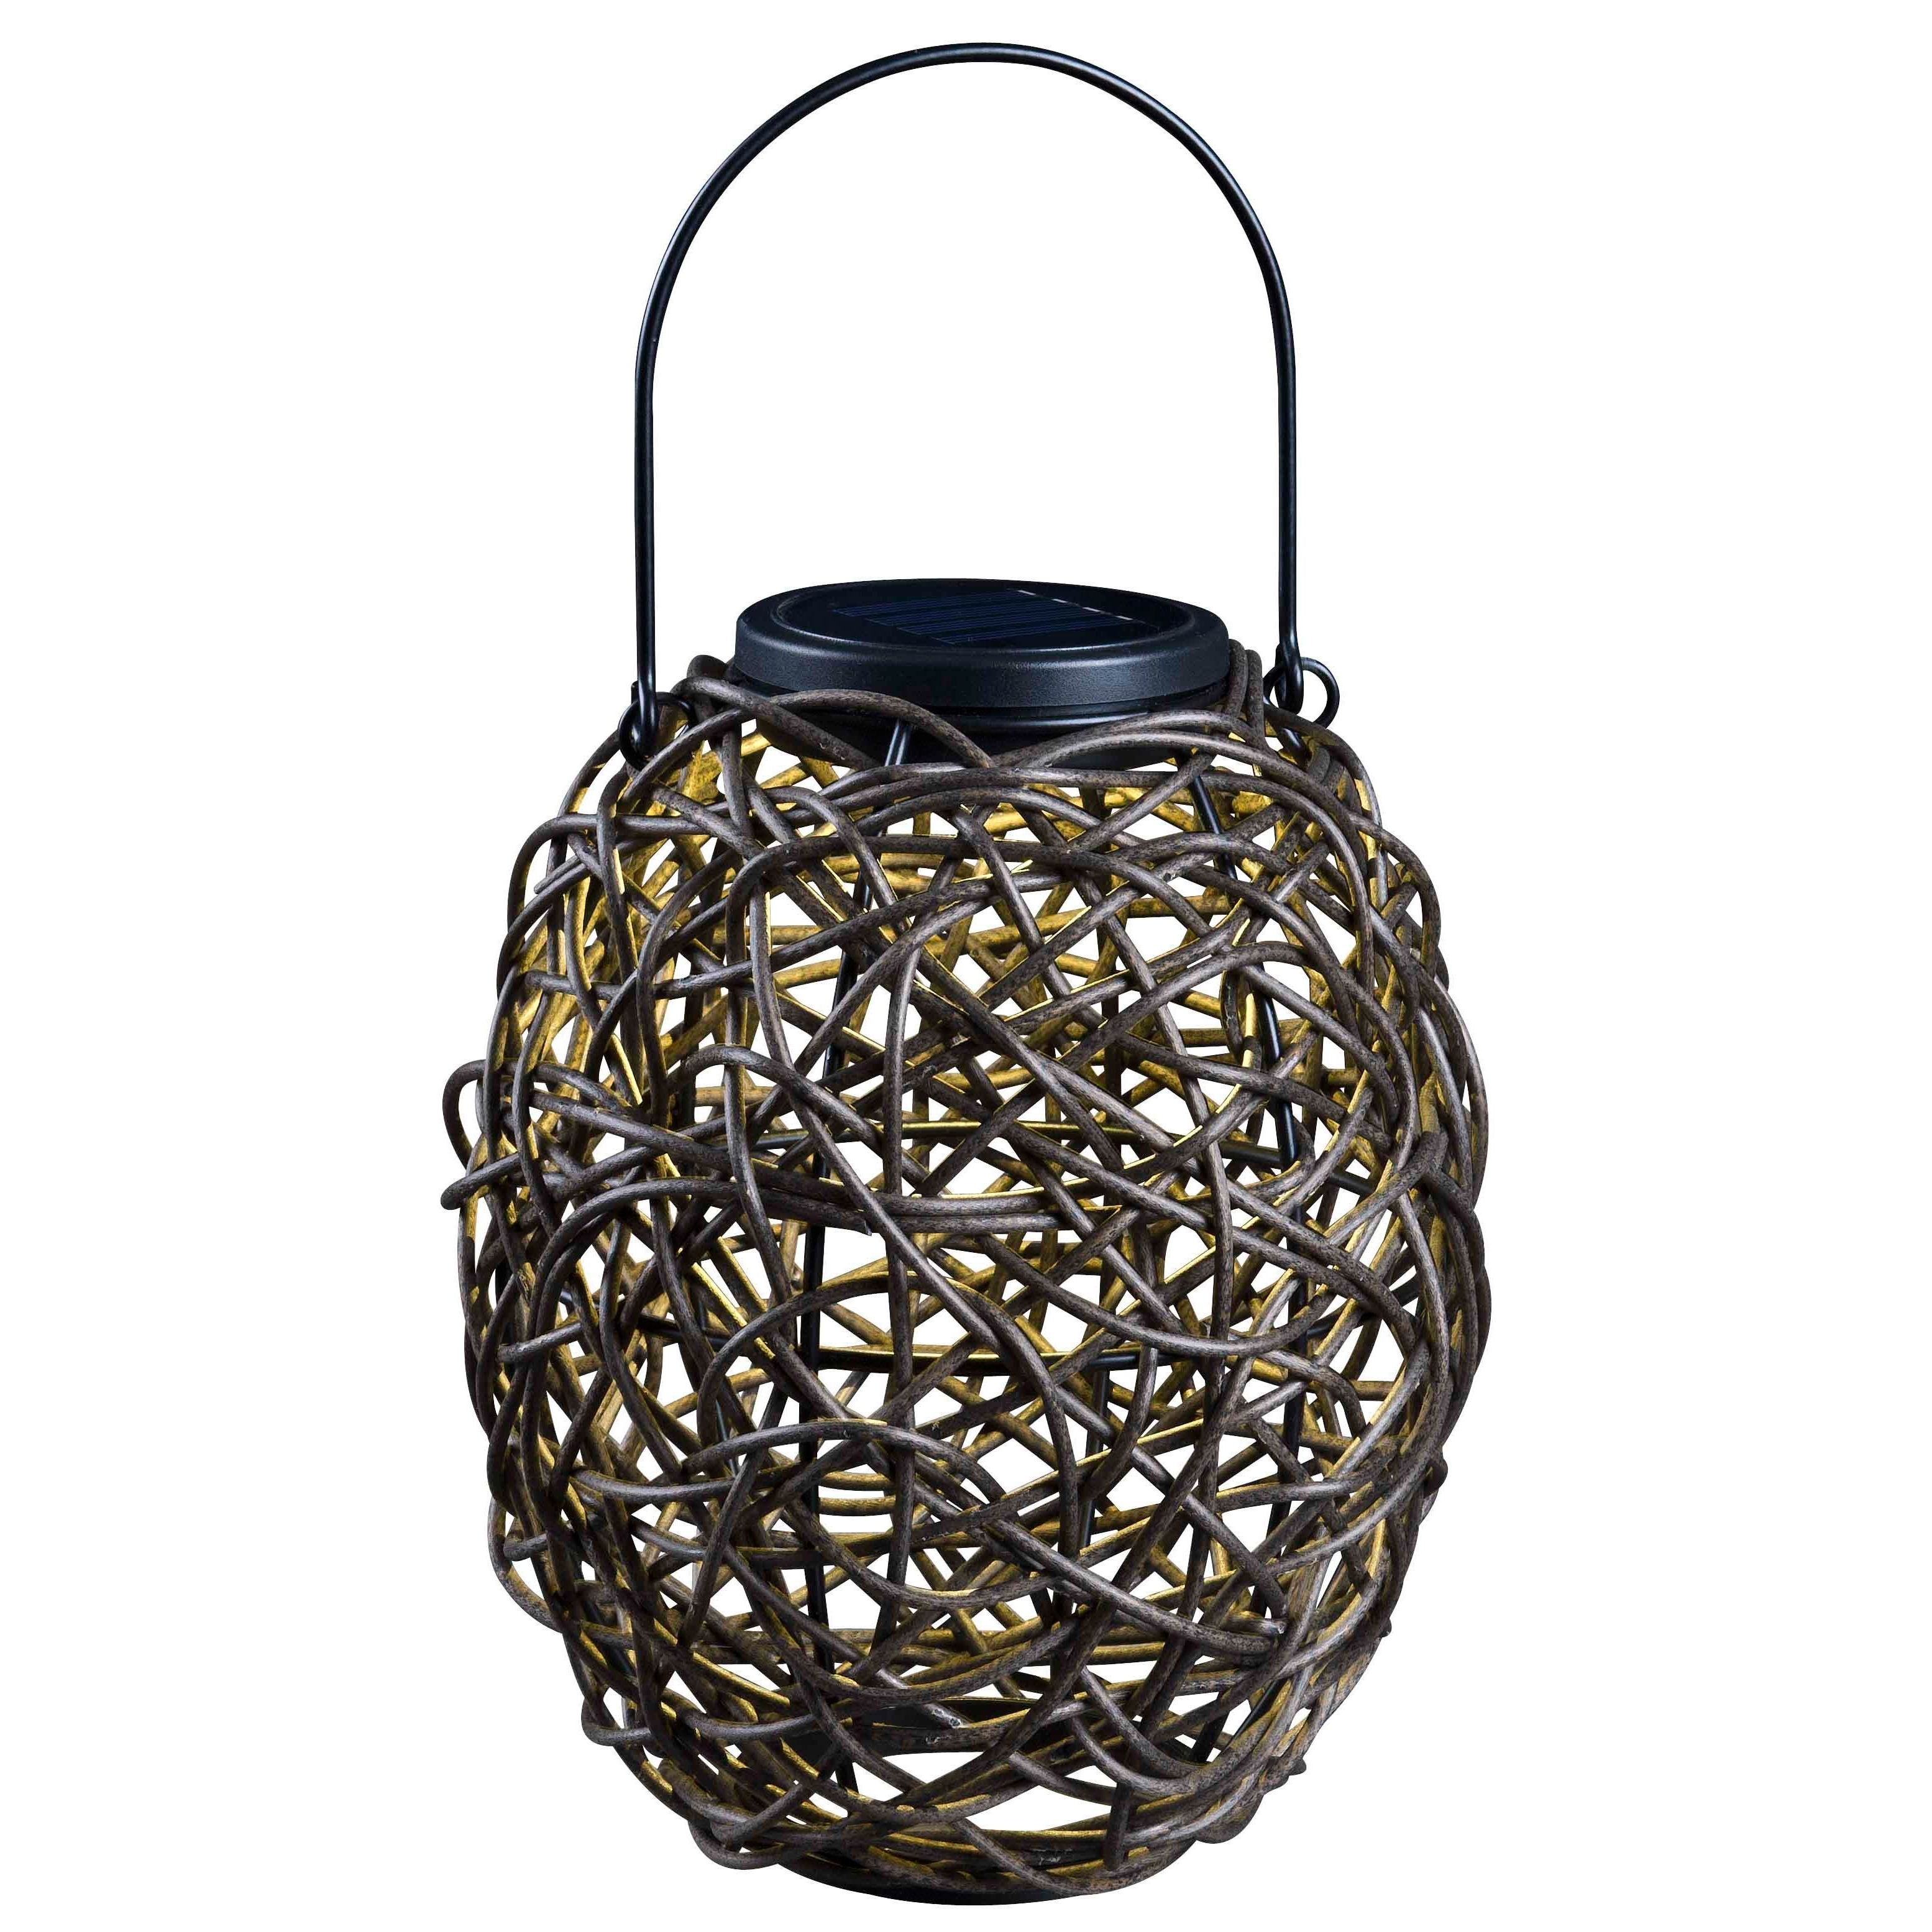 2018 This Outdoor Solar Lantern Makes A Great Accent For Any Garden Area Pertaining To Outdoor Rattan Lanterns (Gallery 4 of 20)